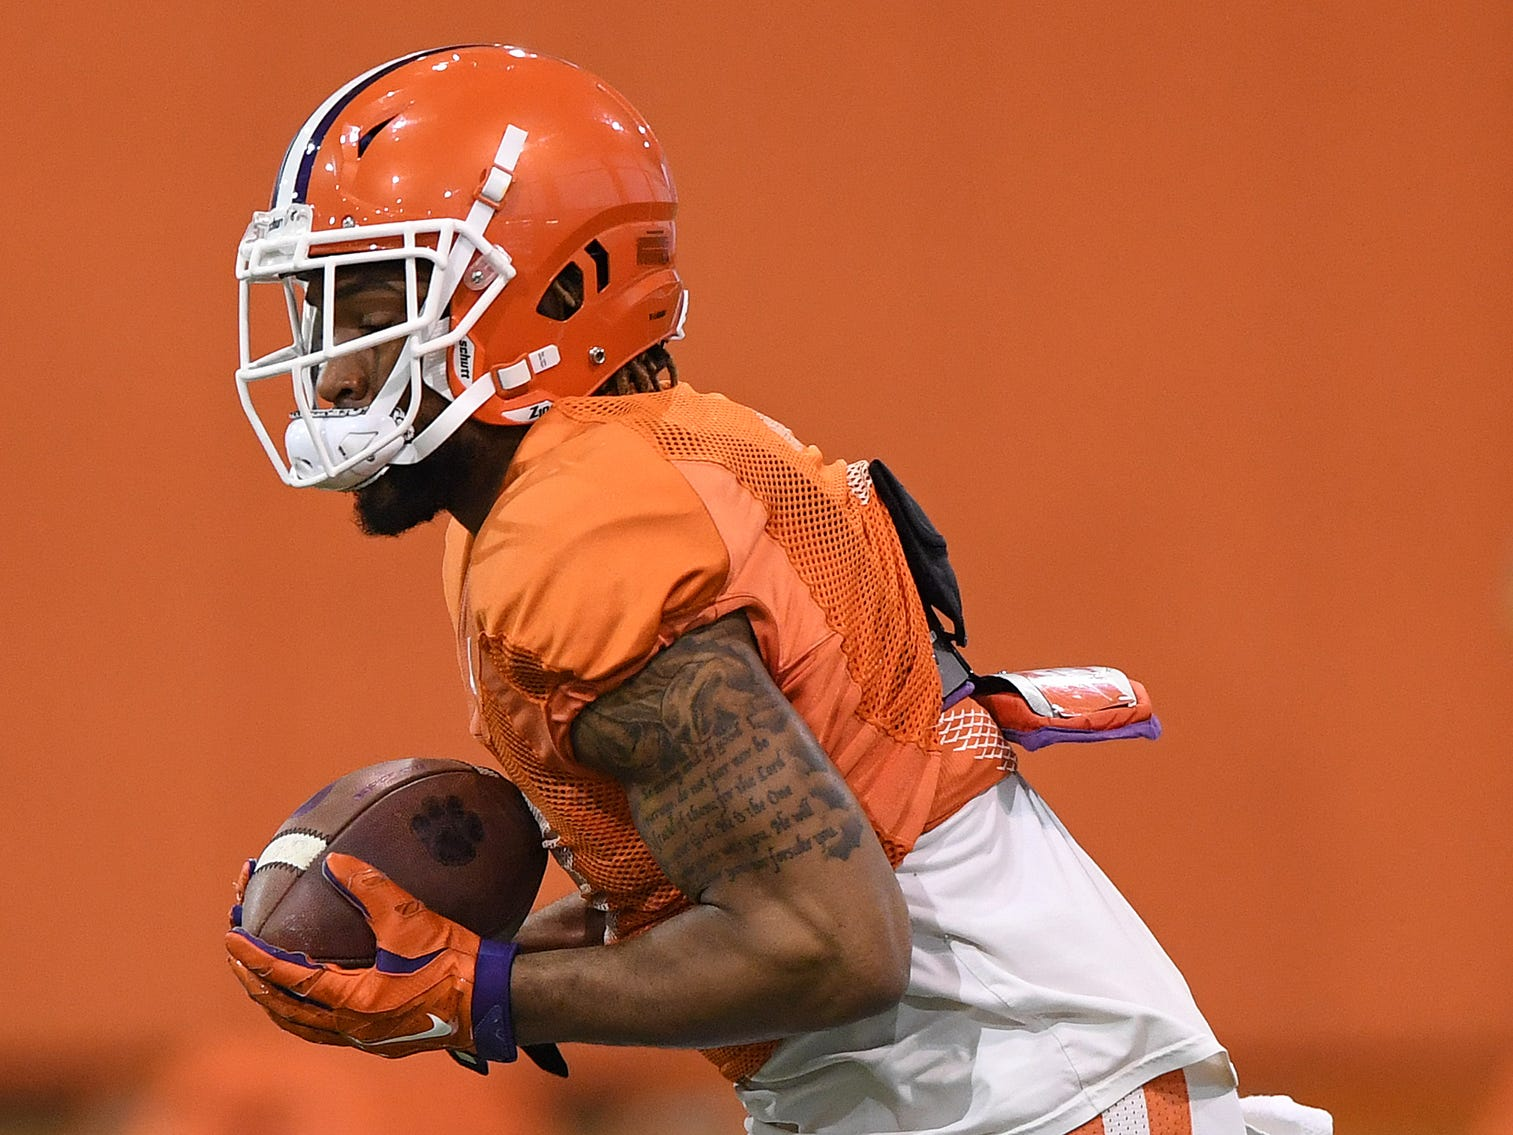 Clemson wide receiver Amari Rodgers (3) returns a kick during the Tigers Cotton Bowl practice on Friday, December 14, 2018.